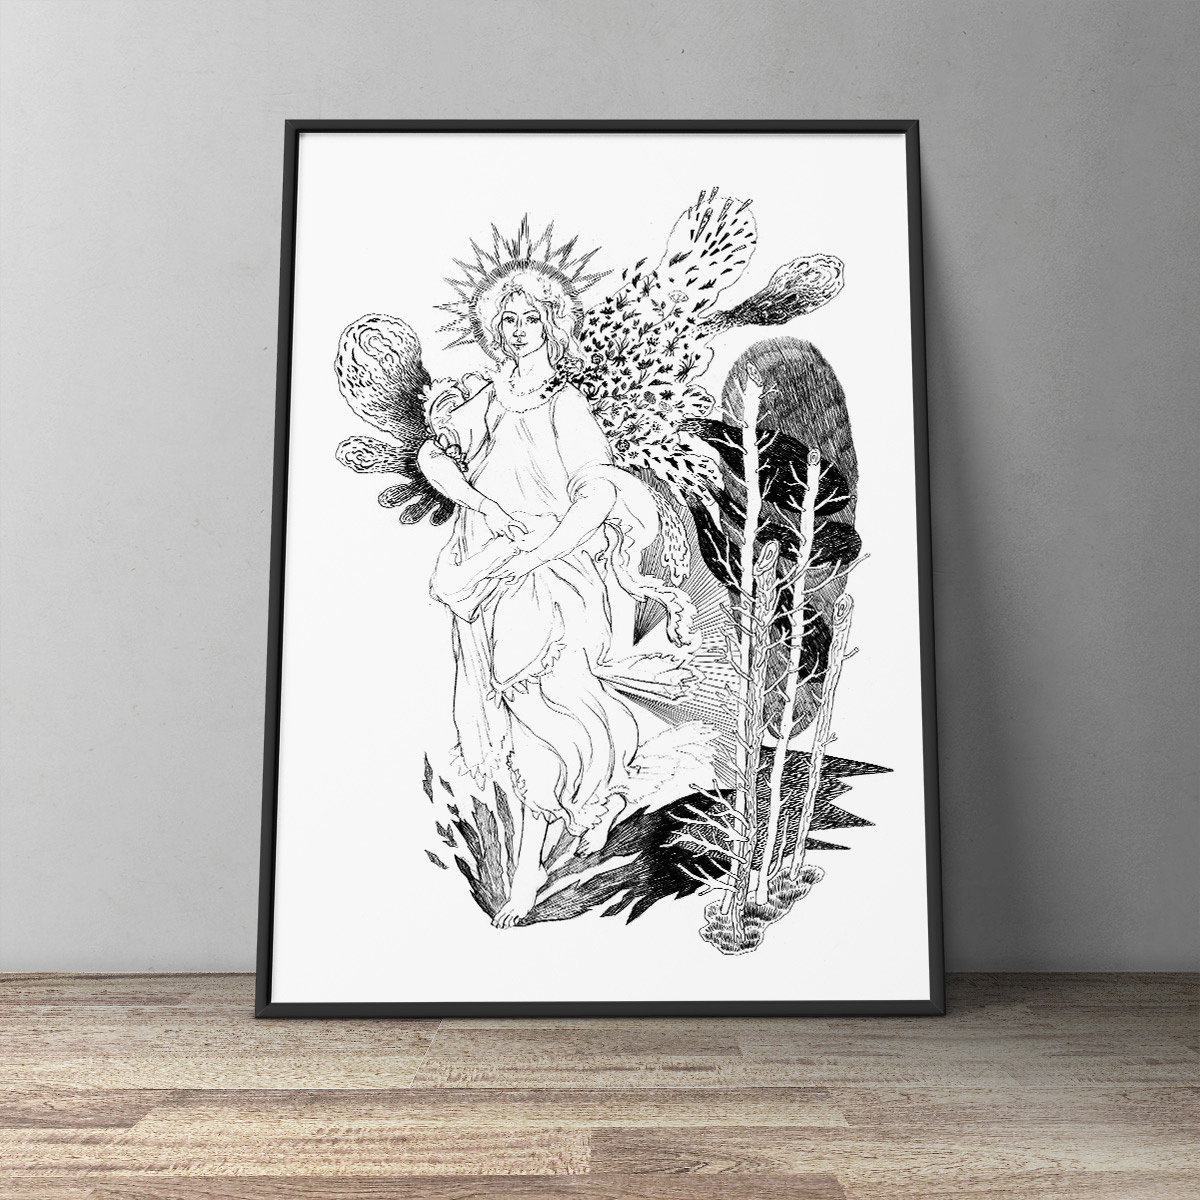 "women in the famous painting ""Primavera"" by the Renaissance painter Sandro Botticelli, art-prints, gliceé, aesthetic, figurative, landscape, monochrome, bodies, botany, sexuality, black, white, ink, paper, black-and-white, flowers, nudity, plants, Buy original high quality art. Paintings, drawings, limited edition prints & posters by talented artists."